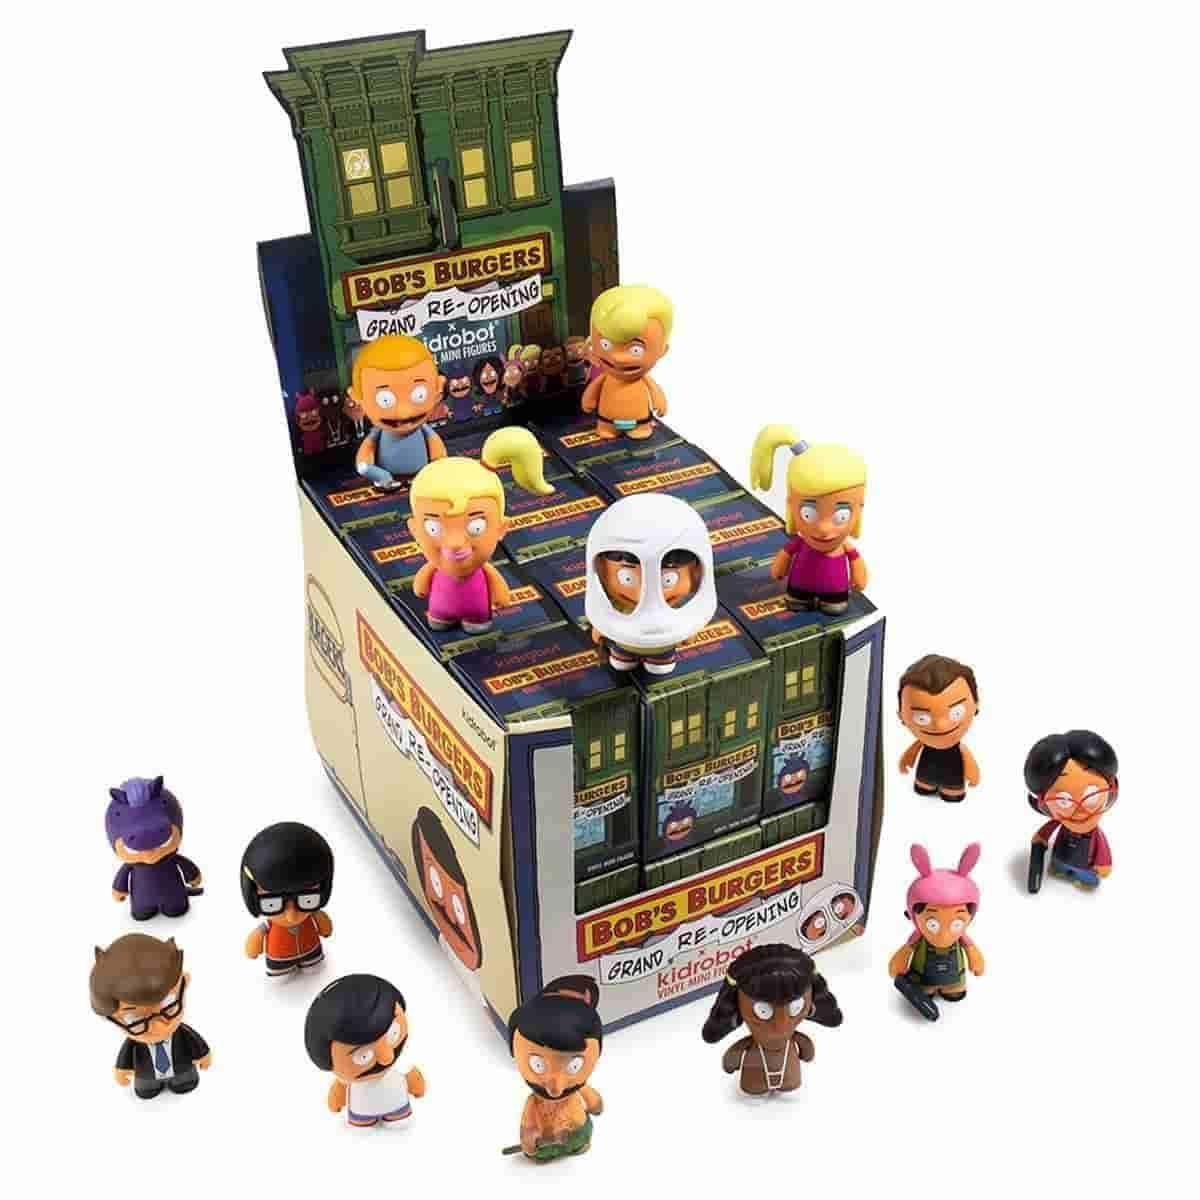 Bob's Burgers Grand Re-Opening Mini Series 24pc Case by Kidrobot - IamRetro.com